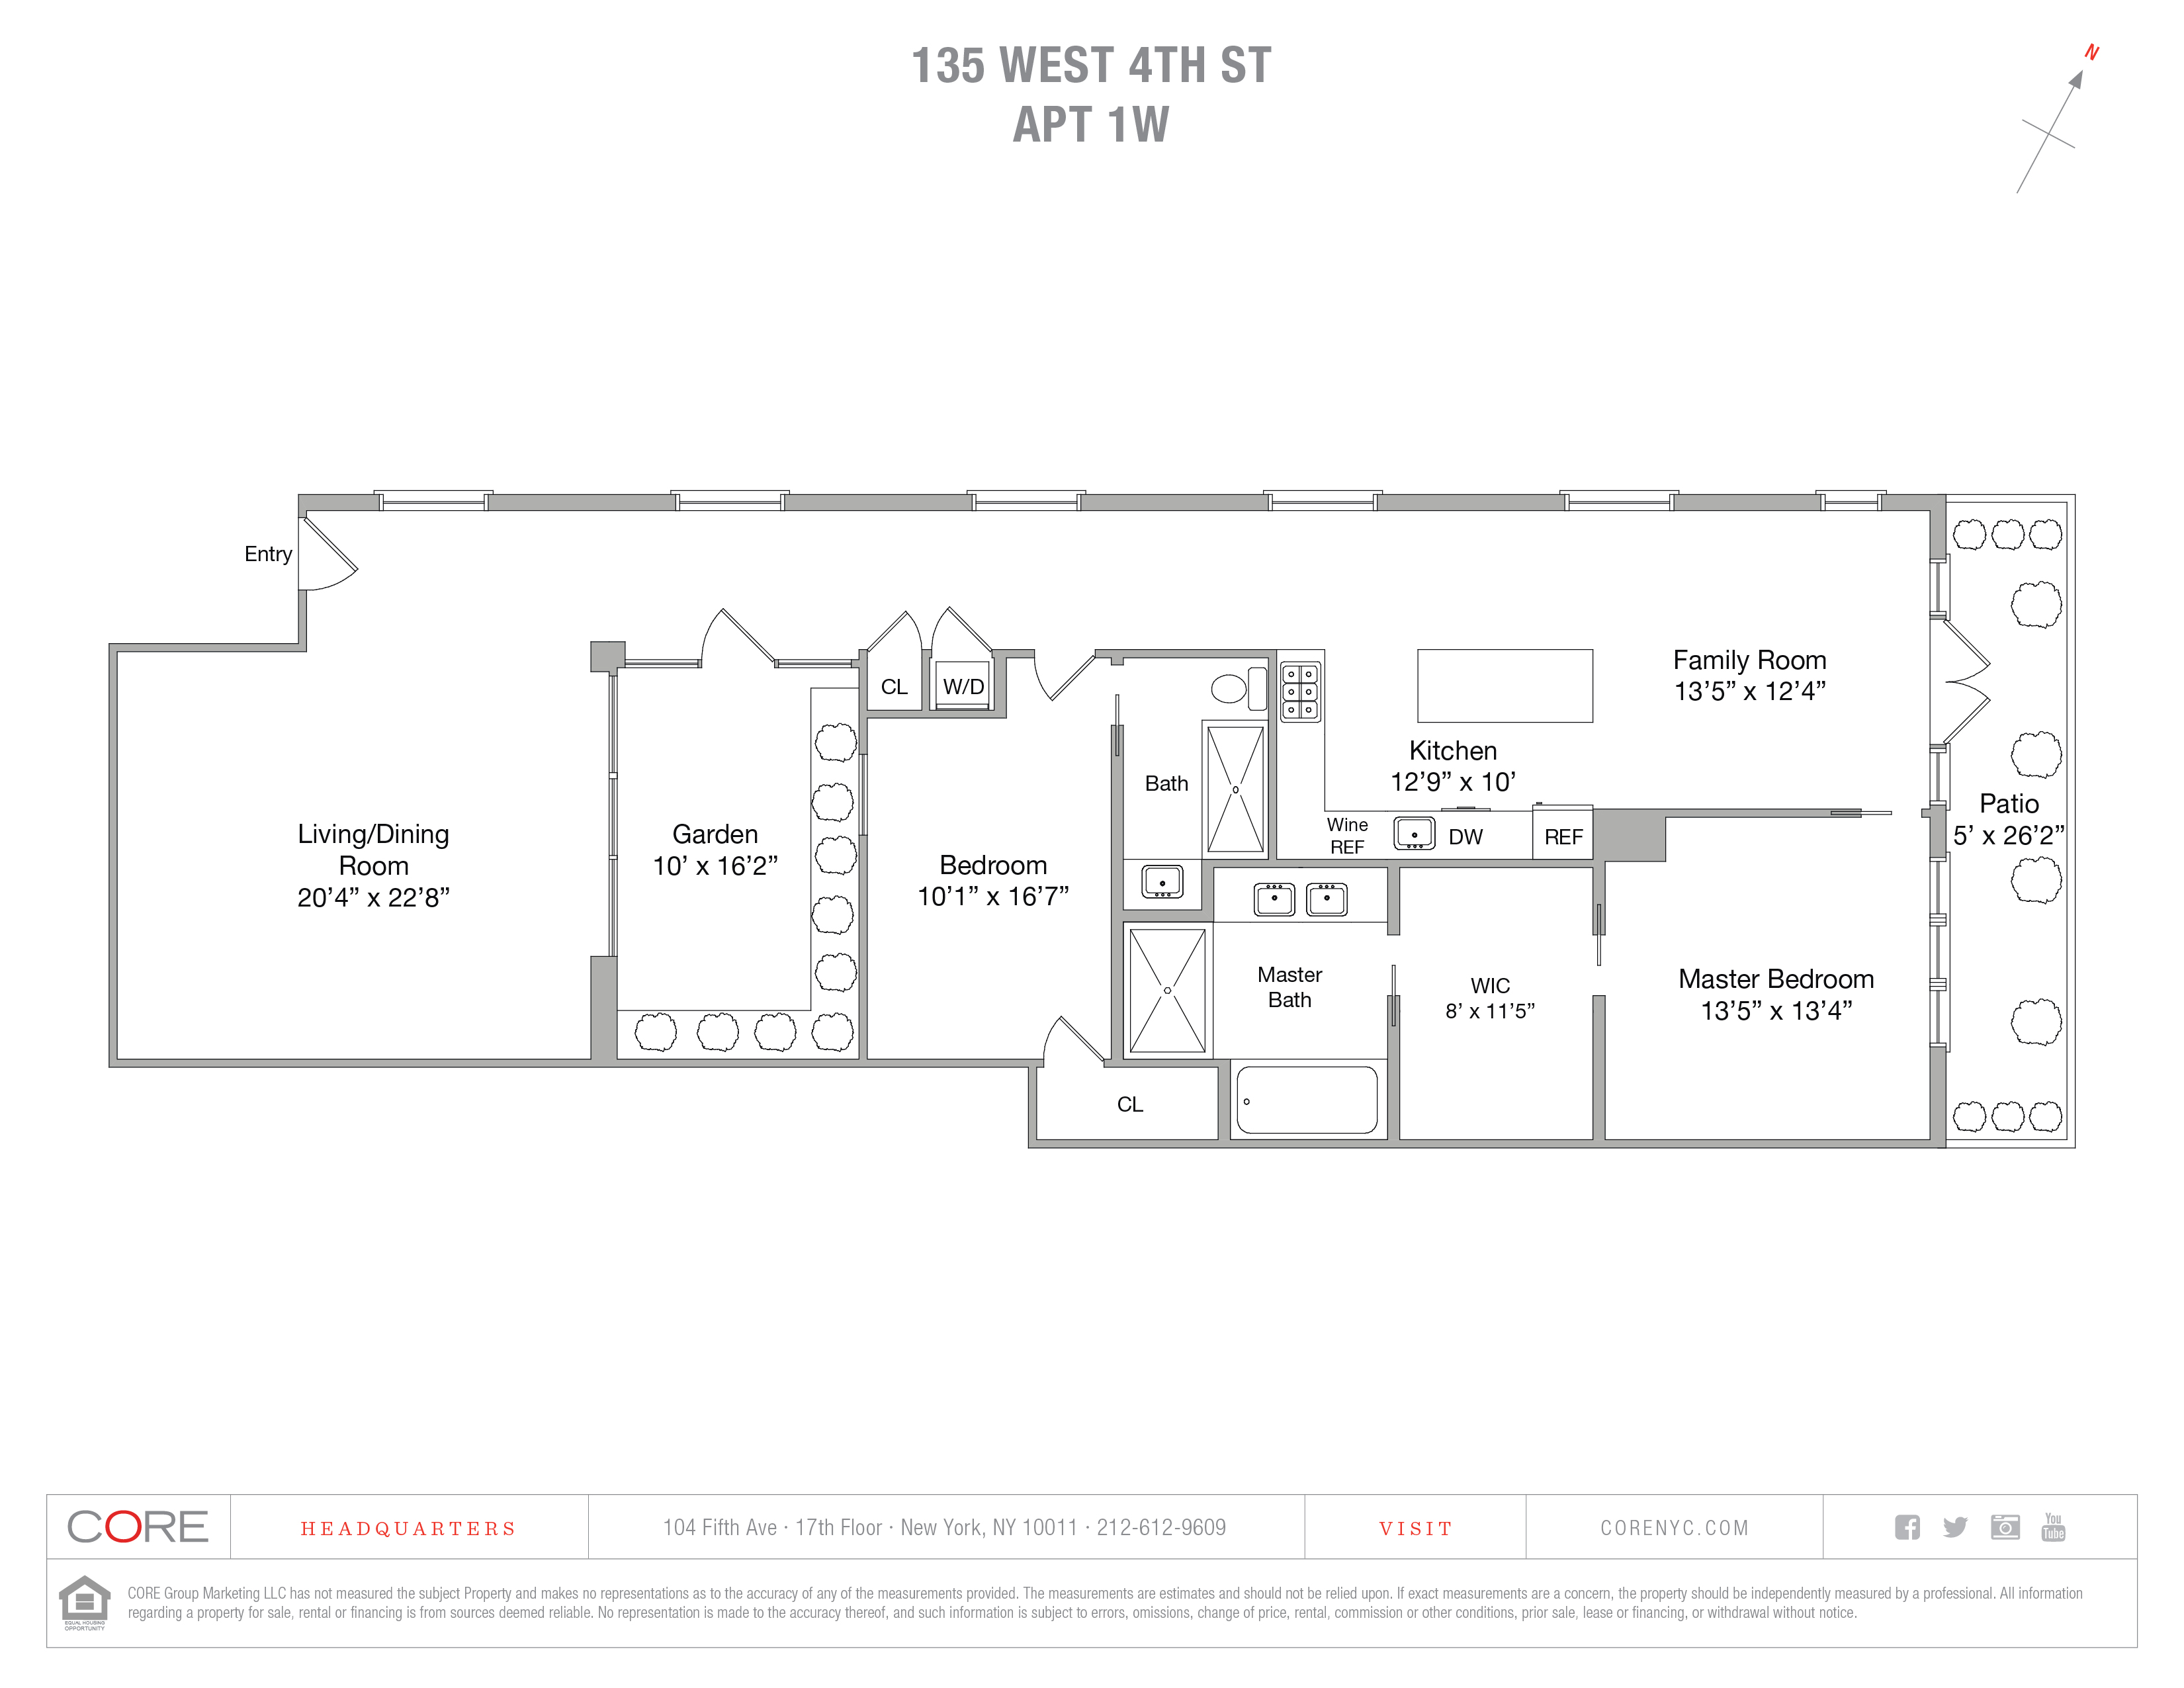 135 West 4th St. ONE WEST, New York, NY 10012